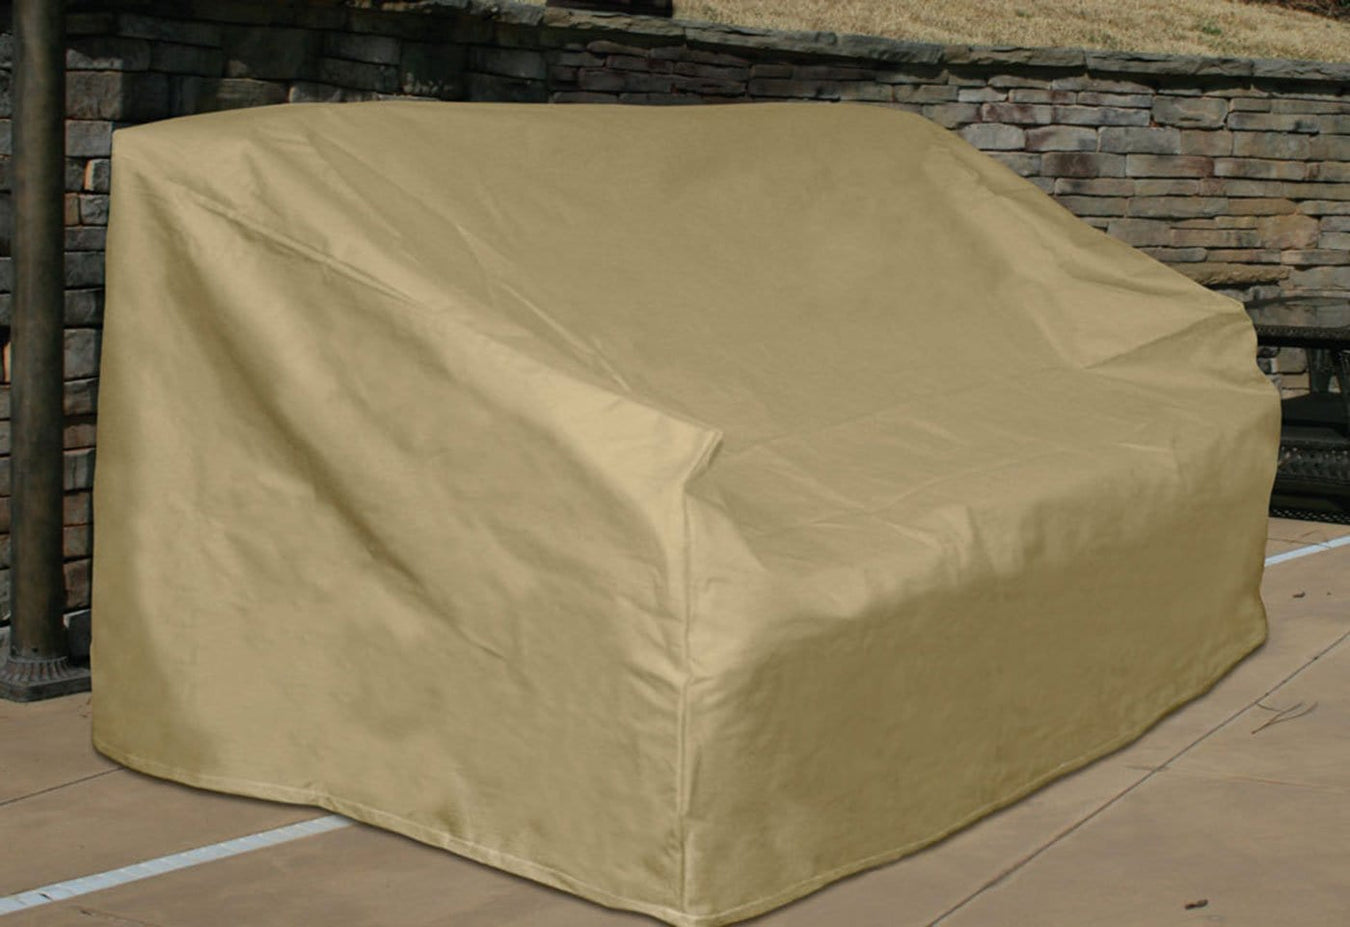 Hearth & Garden Sofa Outdoor Furniture Cover